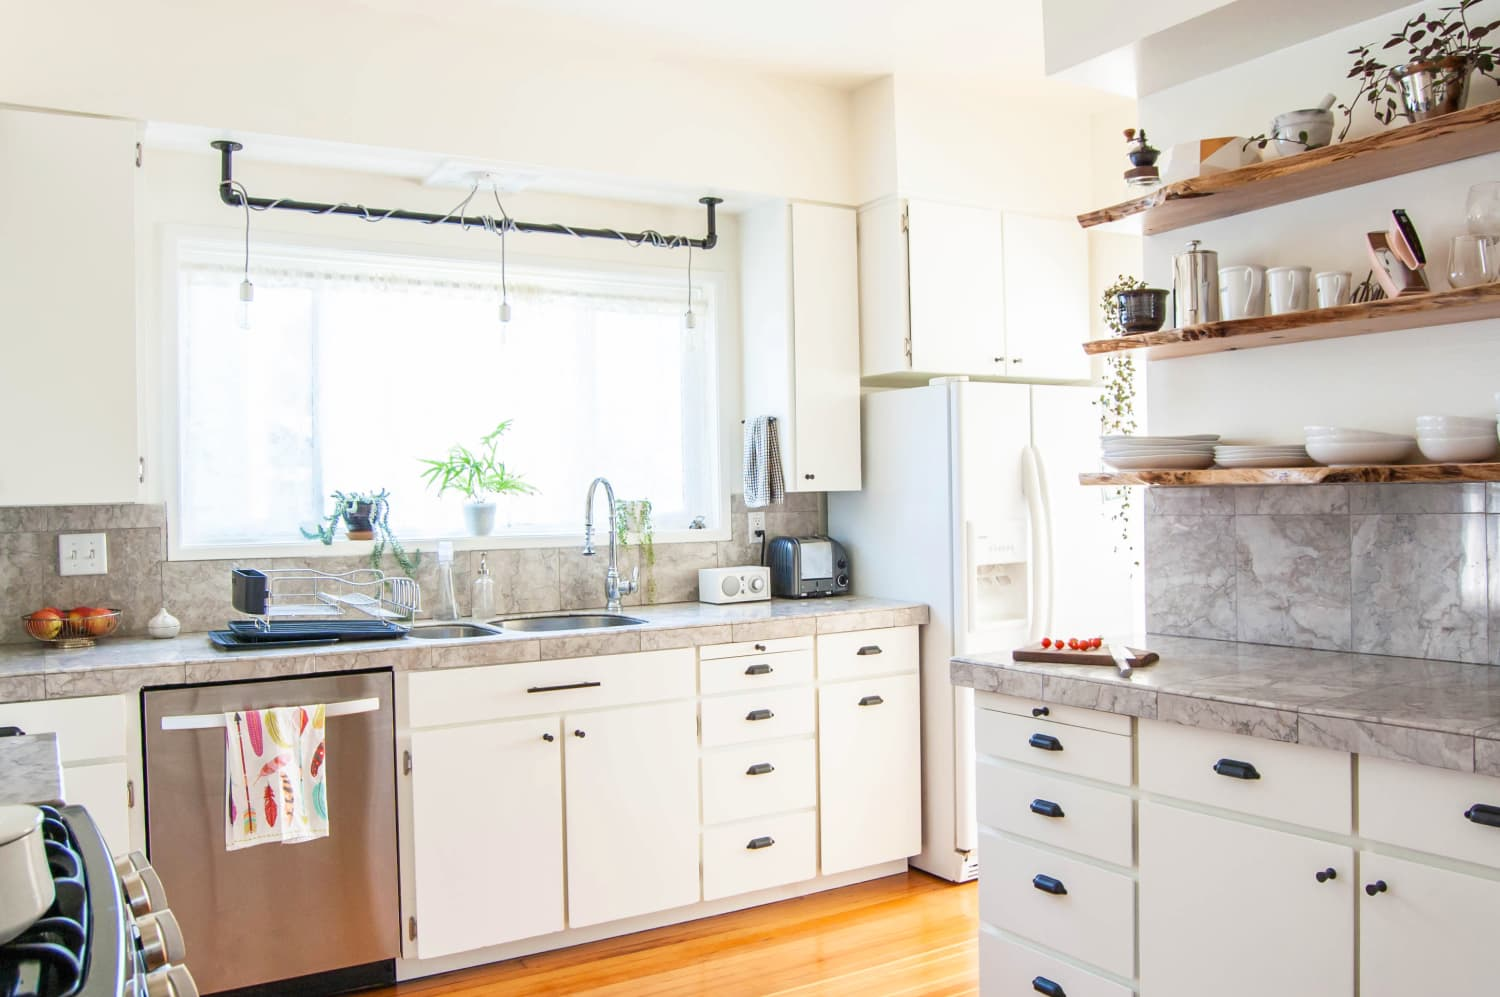 Here�s How Hidden Cabinet Hacks Dramatically Increased My Kitchen Storage